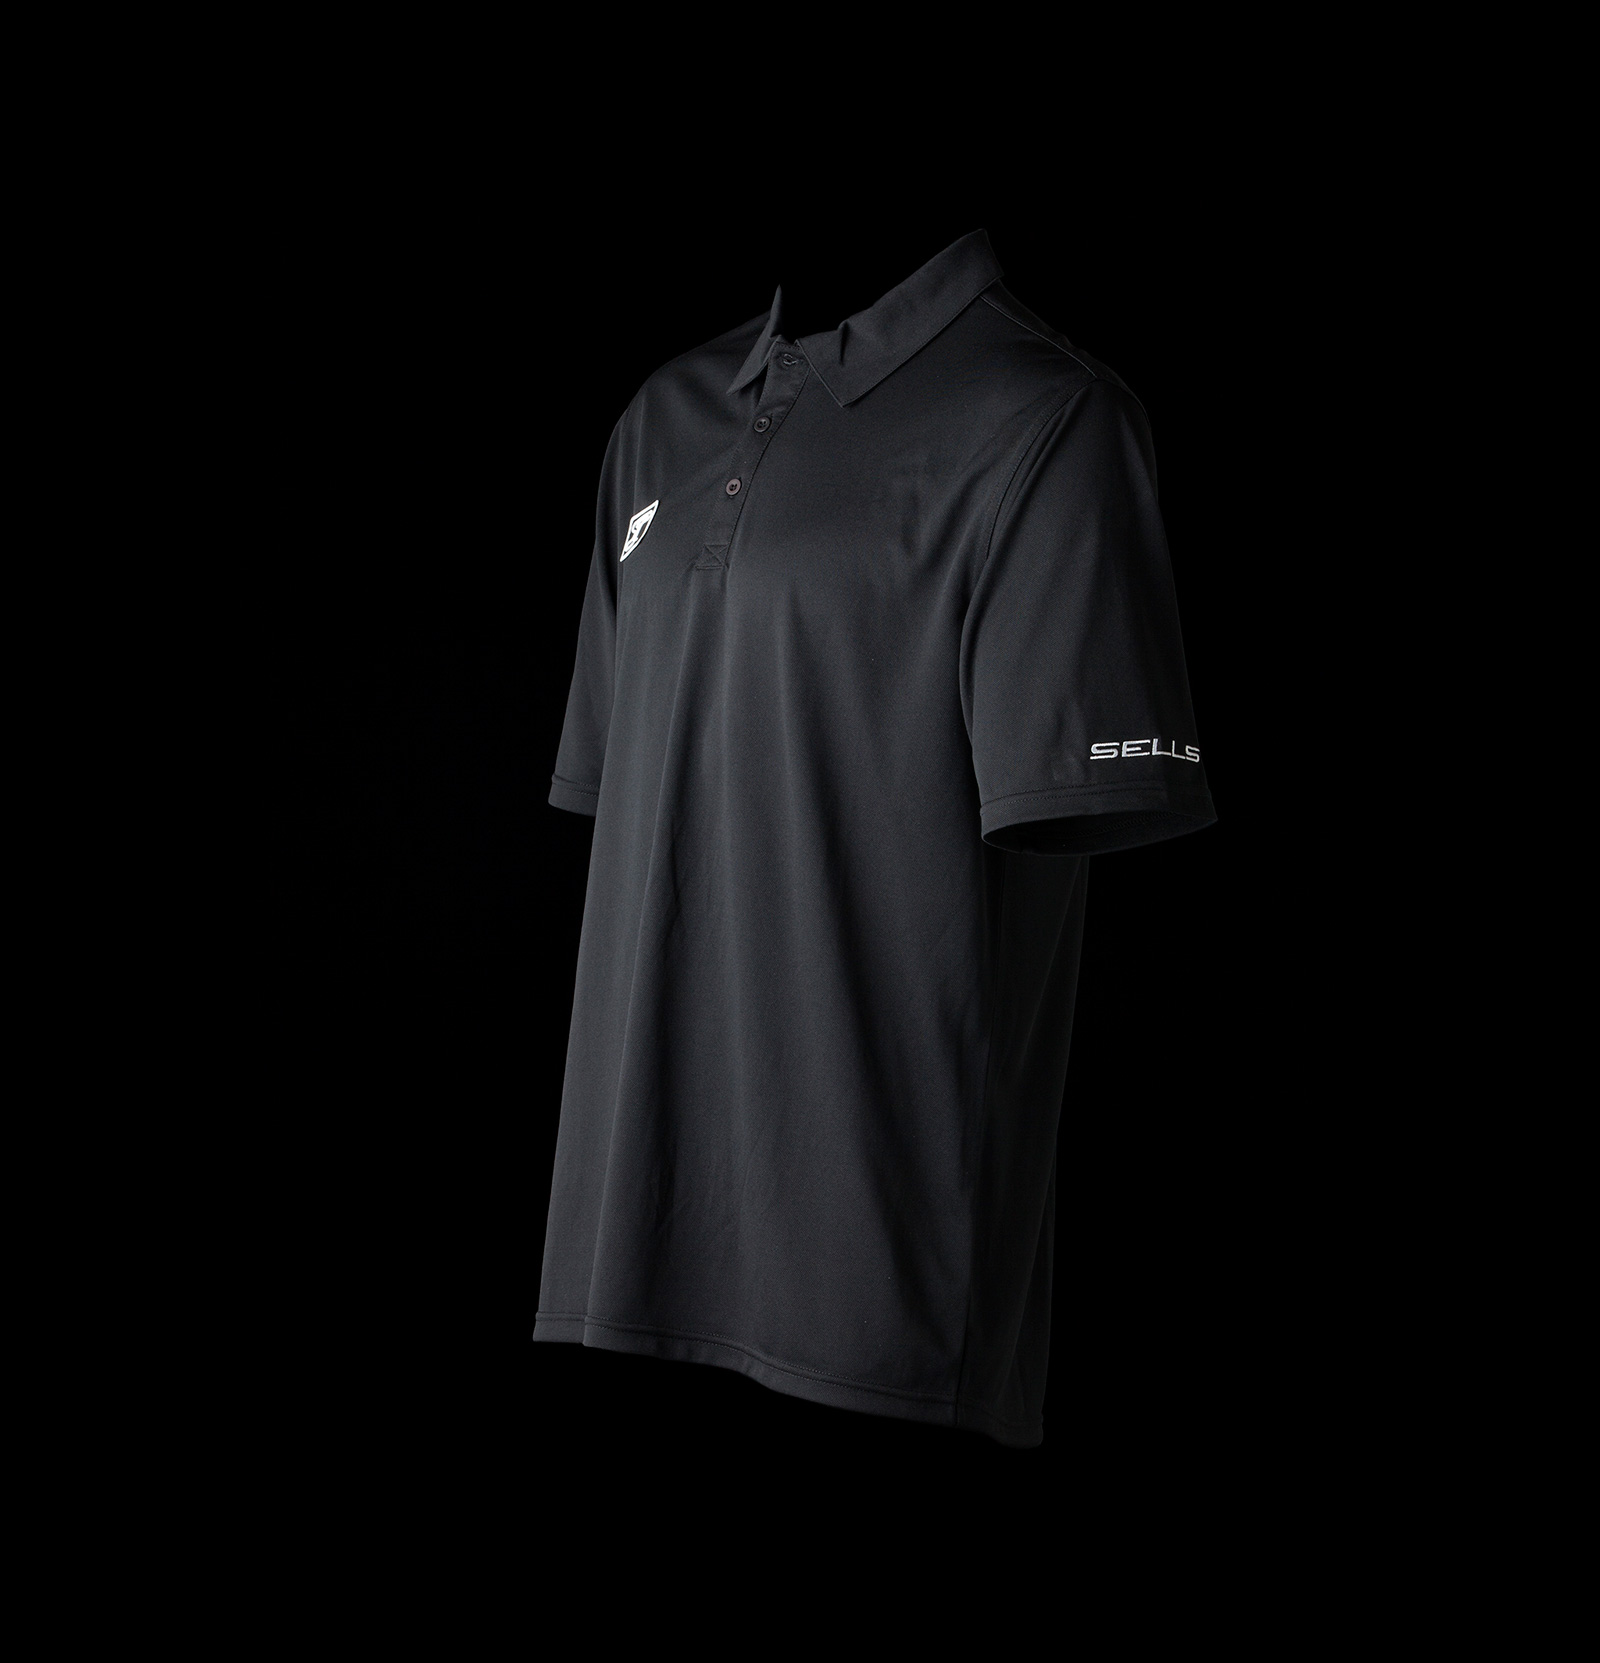 Excel-Polo-Shirt-Promo-12